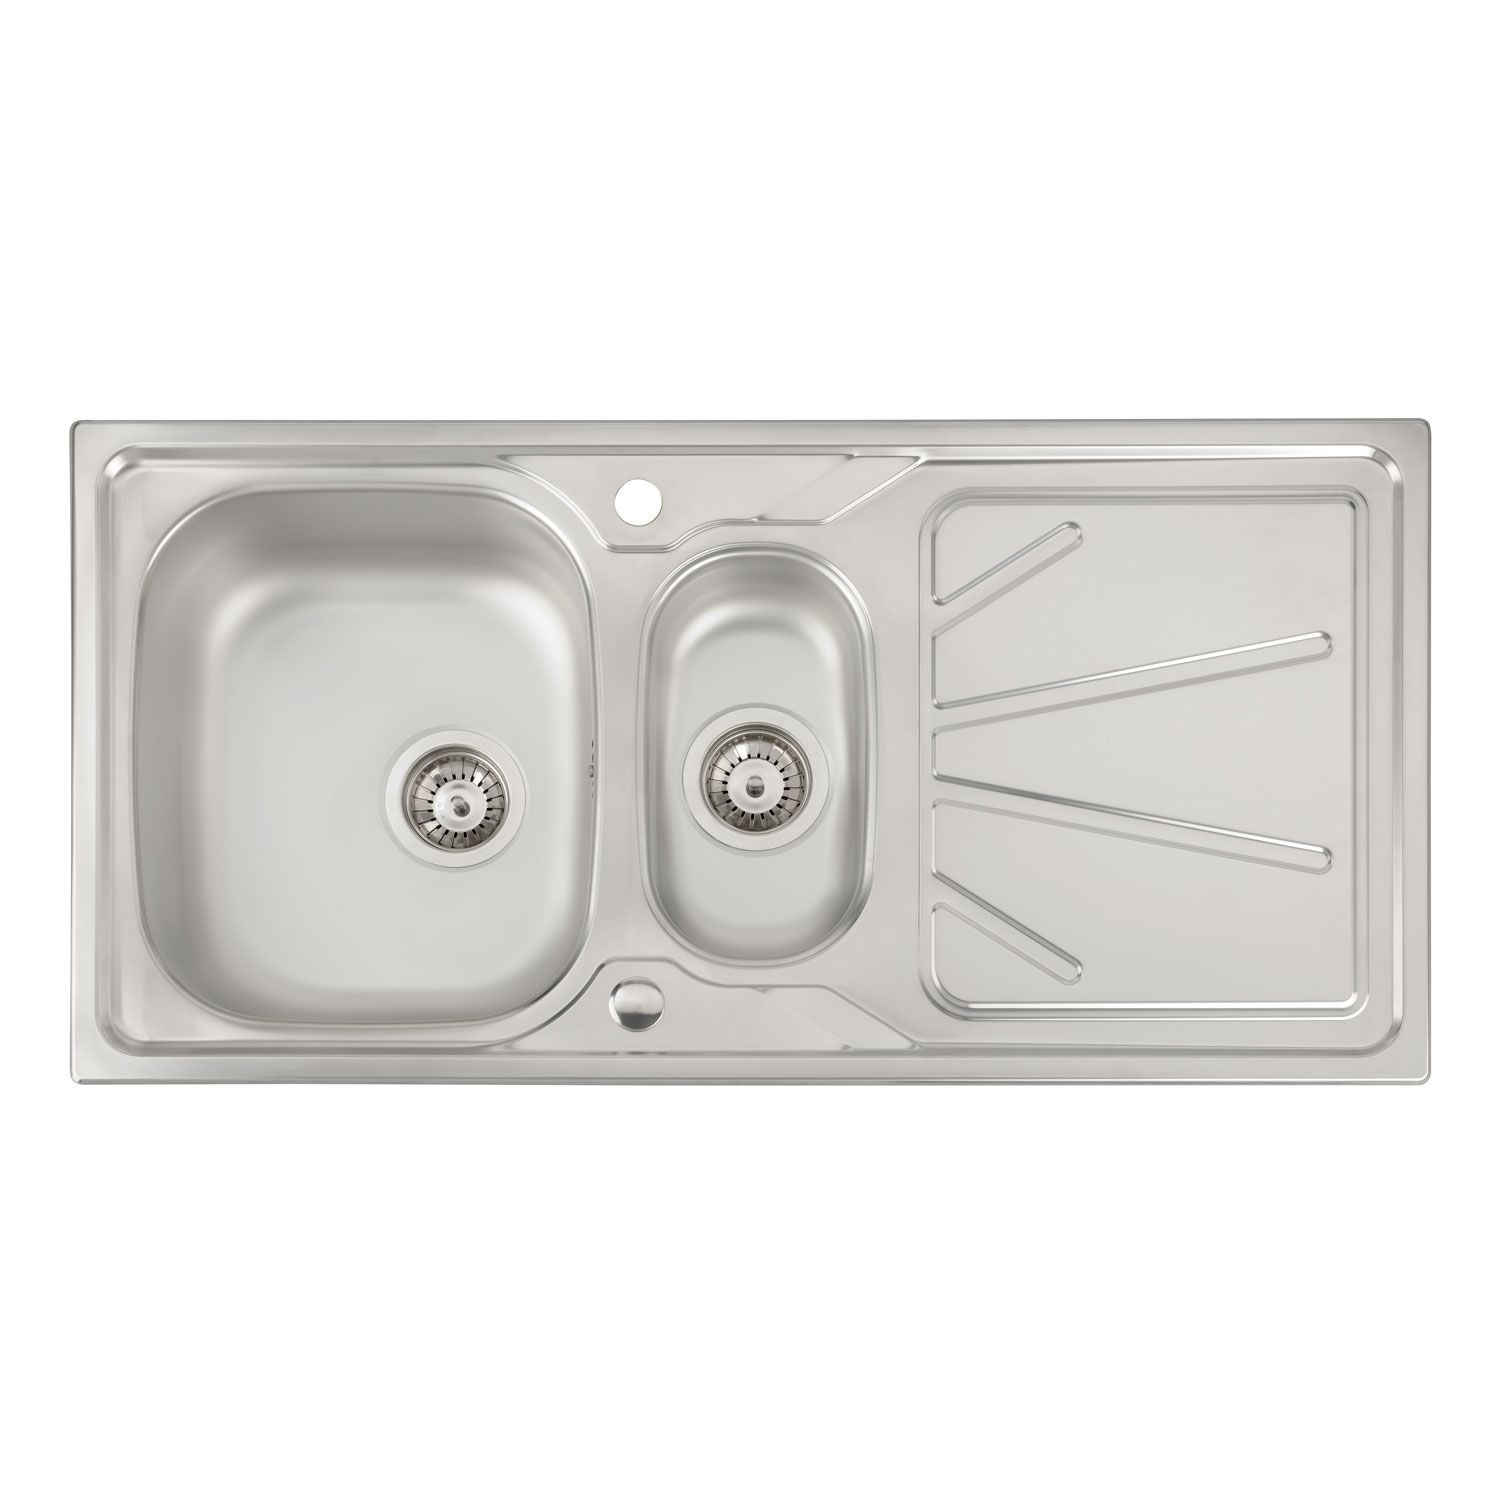 Abode Trydent 1.5 Bowl Stainless Steel Sink - Sinks-Taps.com